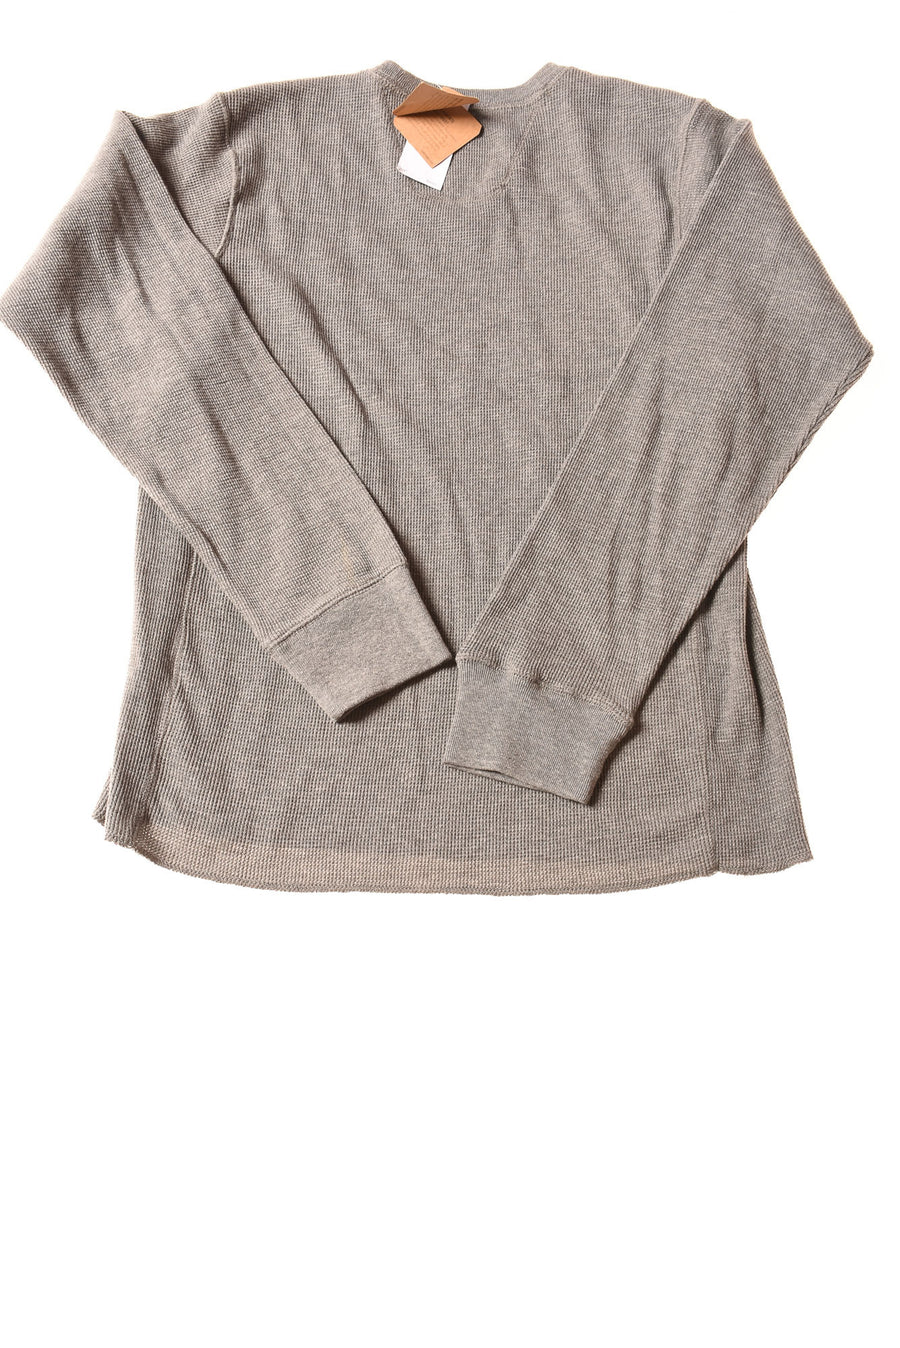 NEW Timberland Men's Shirt Medium Gray